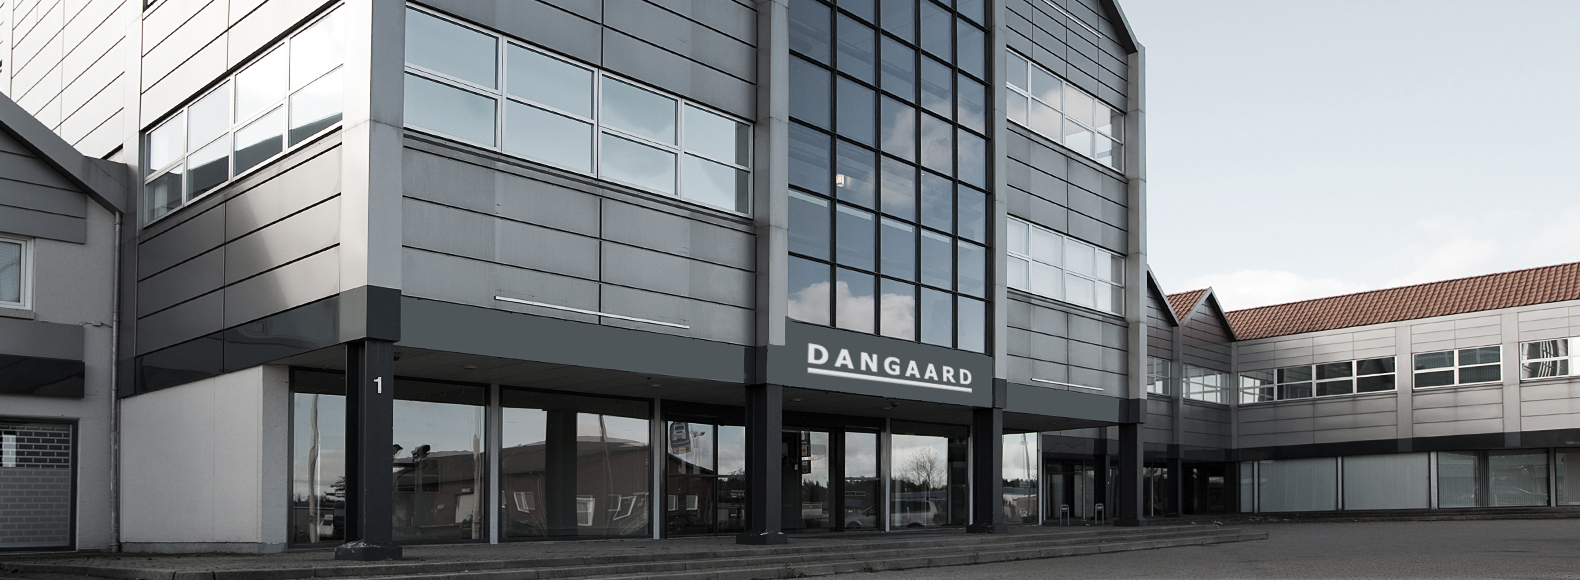 Lee Chambers Confirms Dangaard Acquisition of PhenomGames SARL